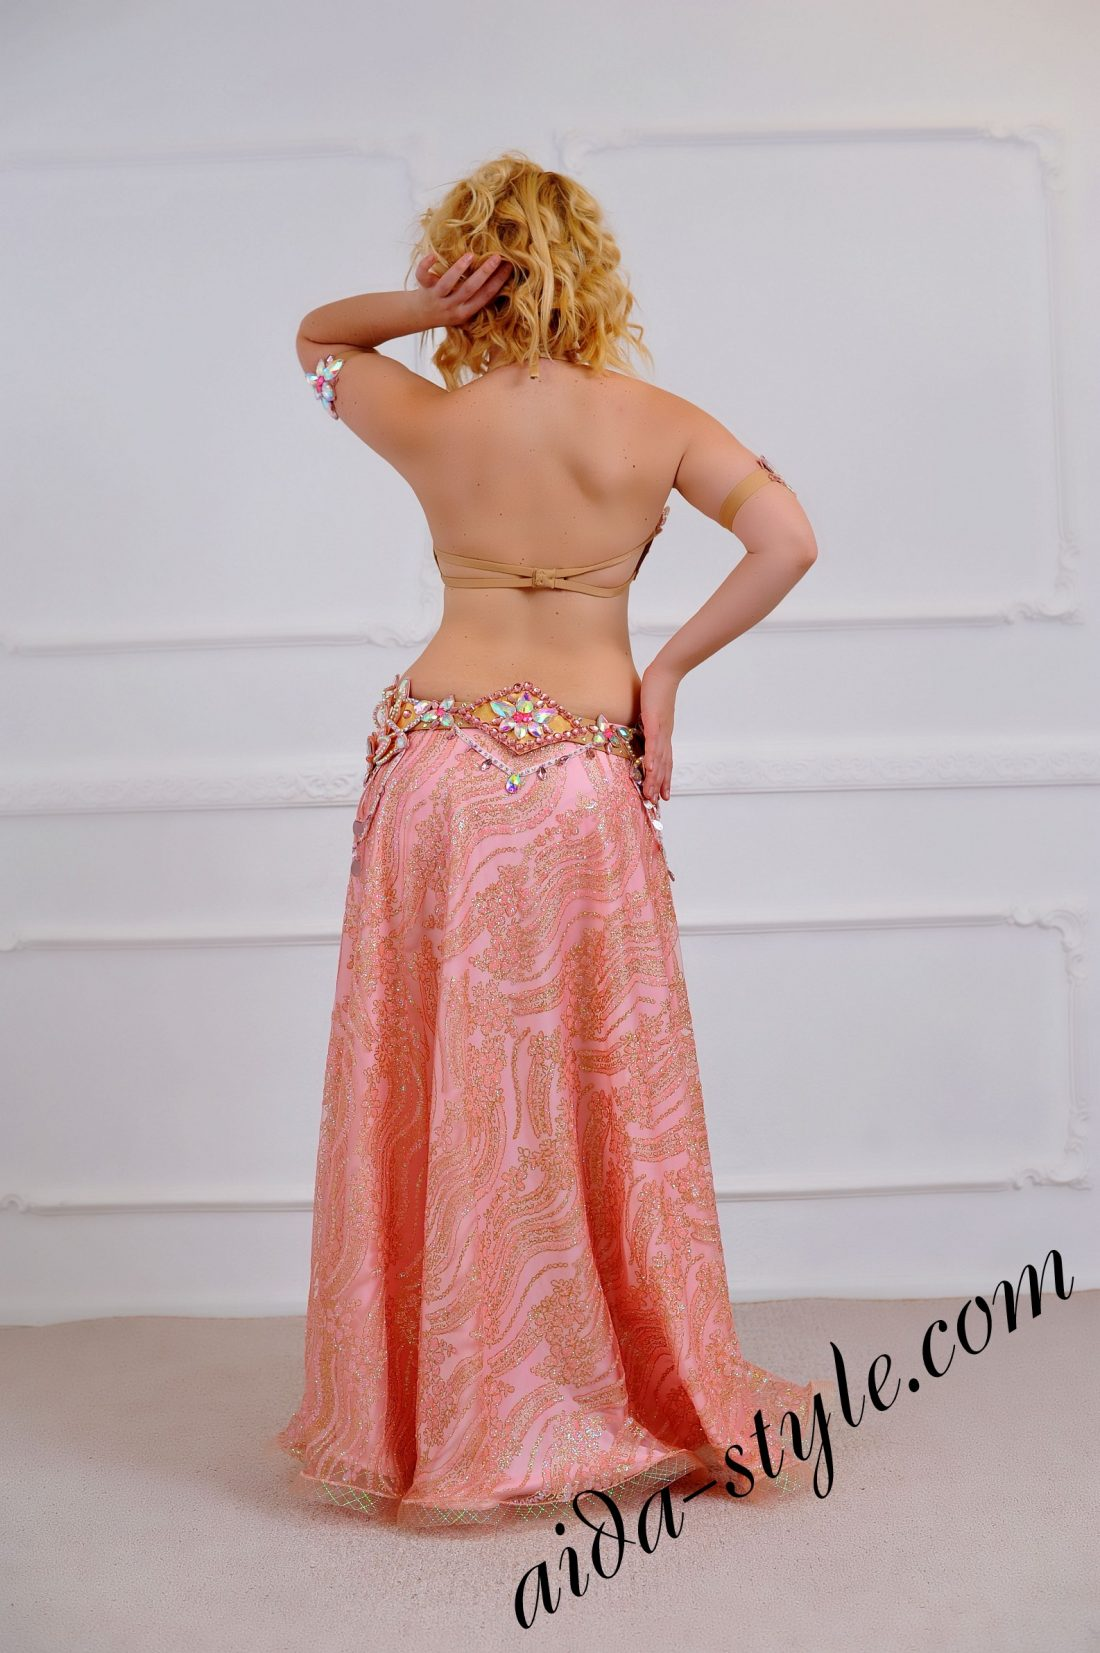 full belly dance costume with bra, belt, wide semi circular sparkling skirt and accessories